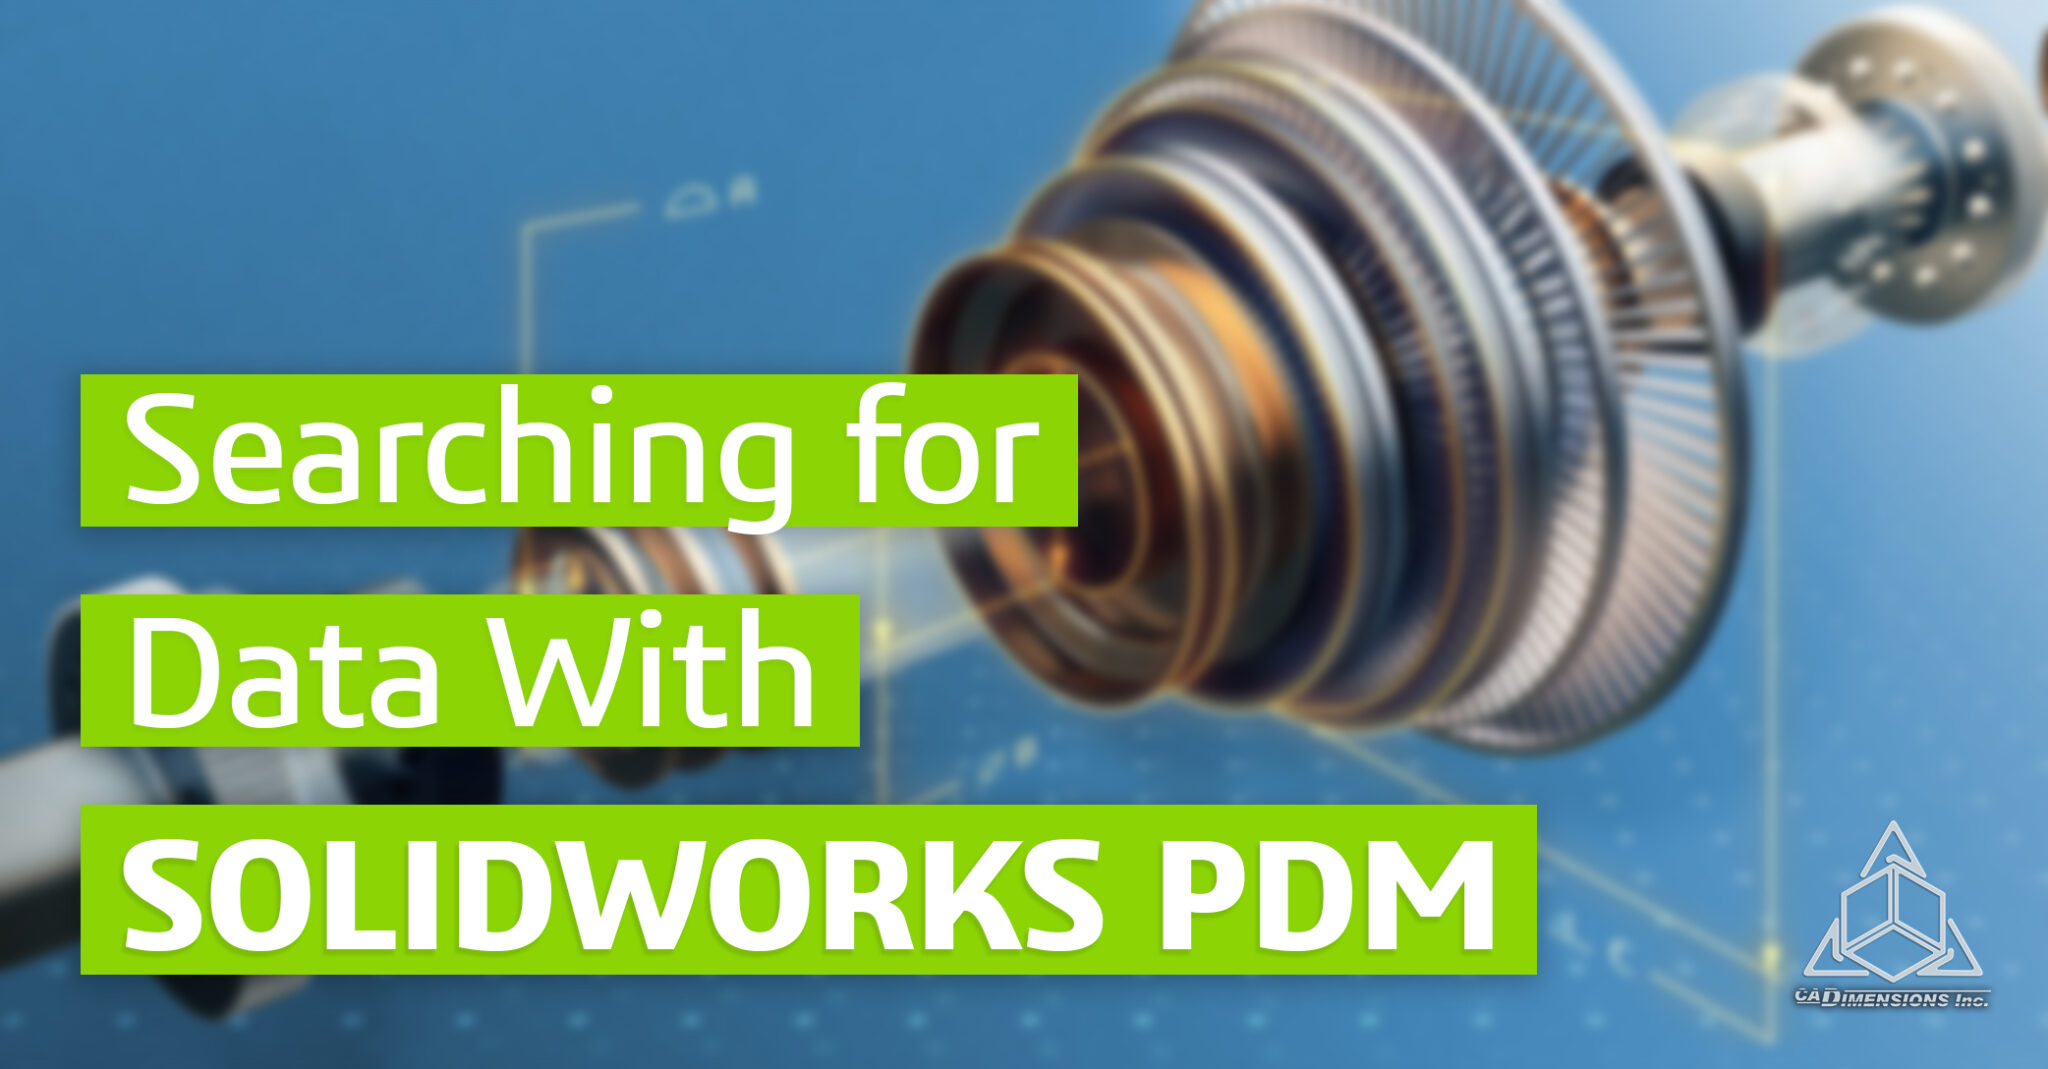 SOLIDWORKS PDM Solves Big a Problem - Searching for Data CADimensions